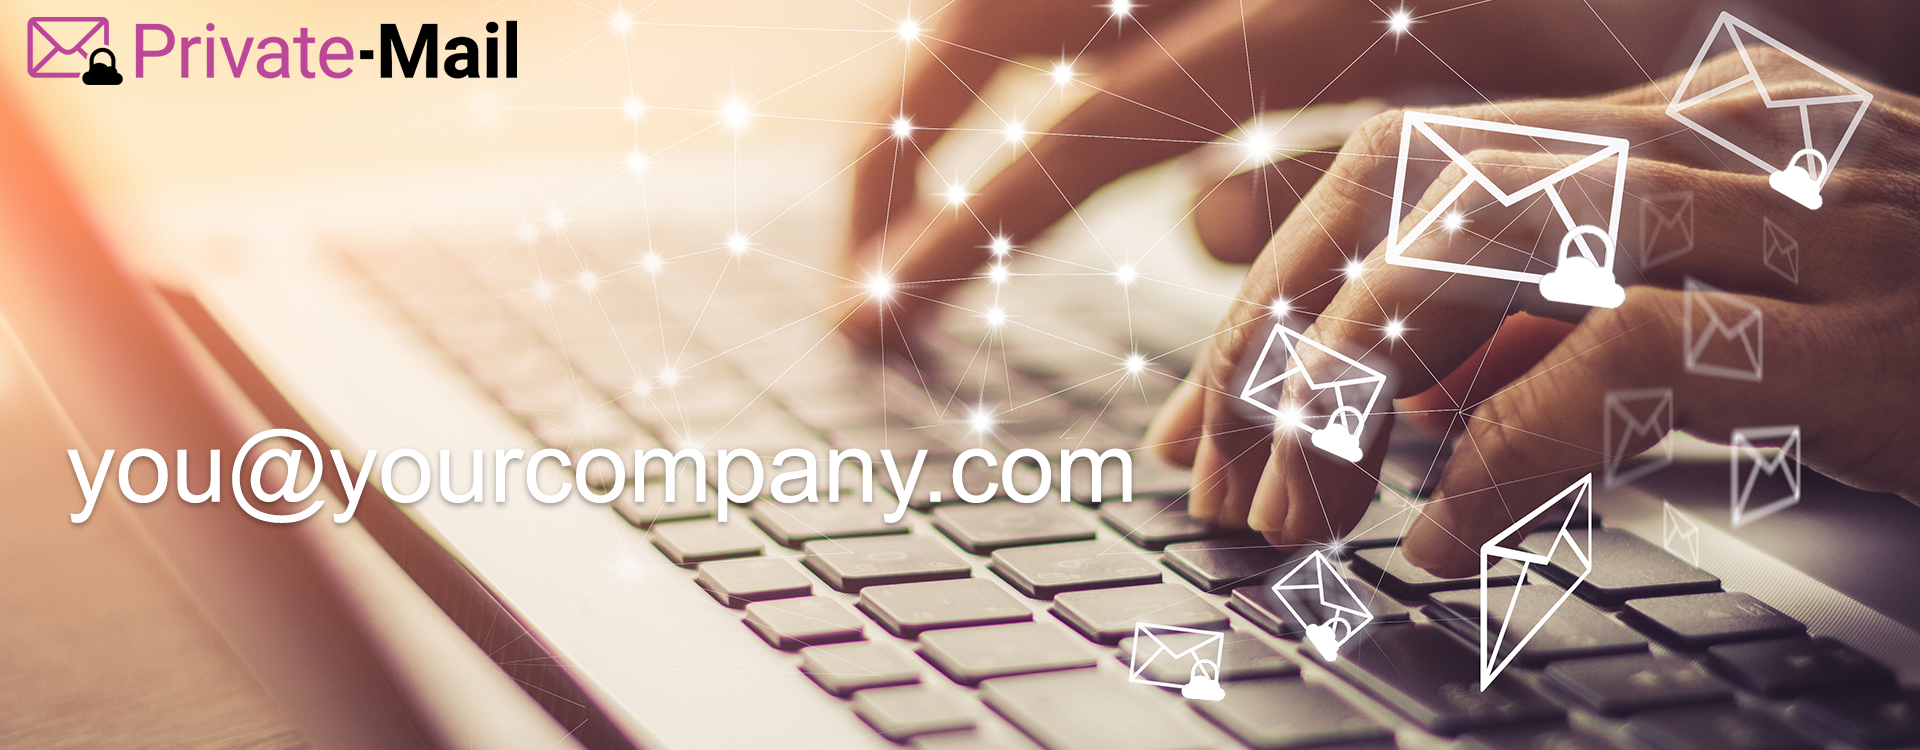 Private-Mail now offers Domain Registration for Business Plans